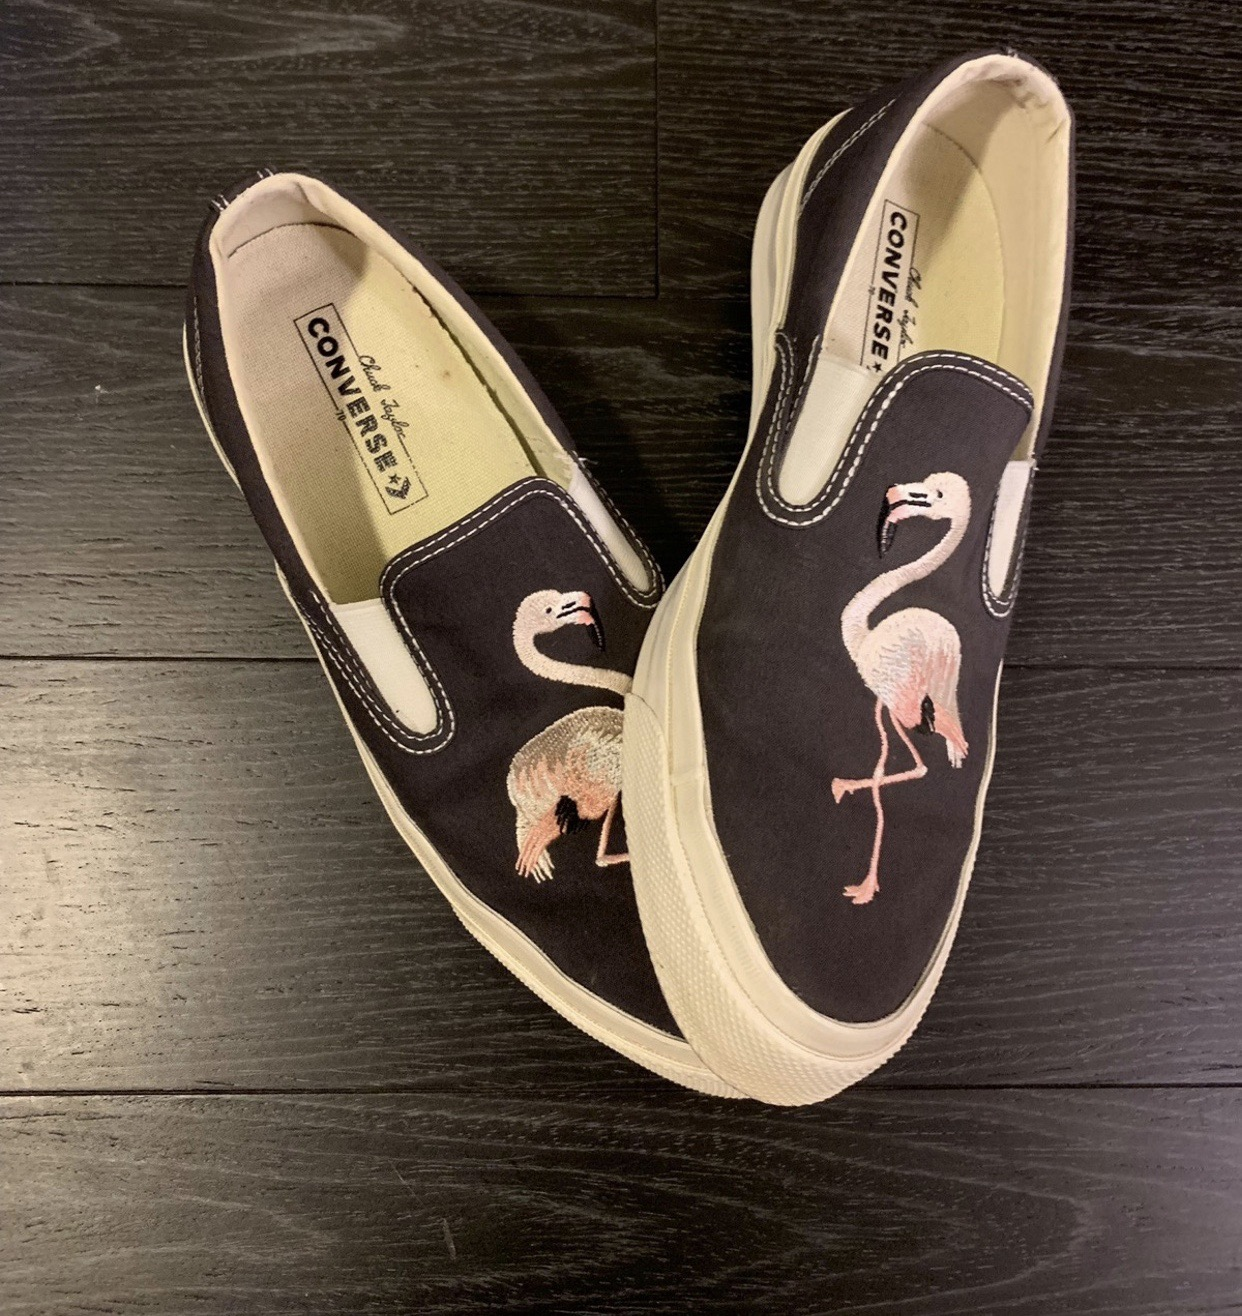 6f3125c07a125a Converse Flamingo Slip On Size 9 - Low-Top Sneakers for Sale - Grailed